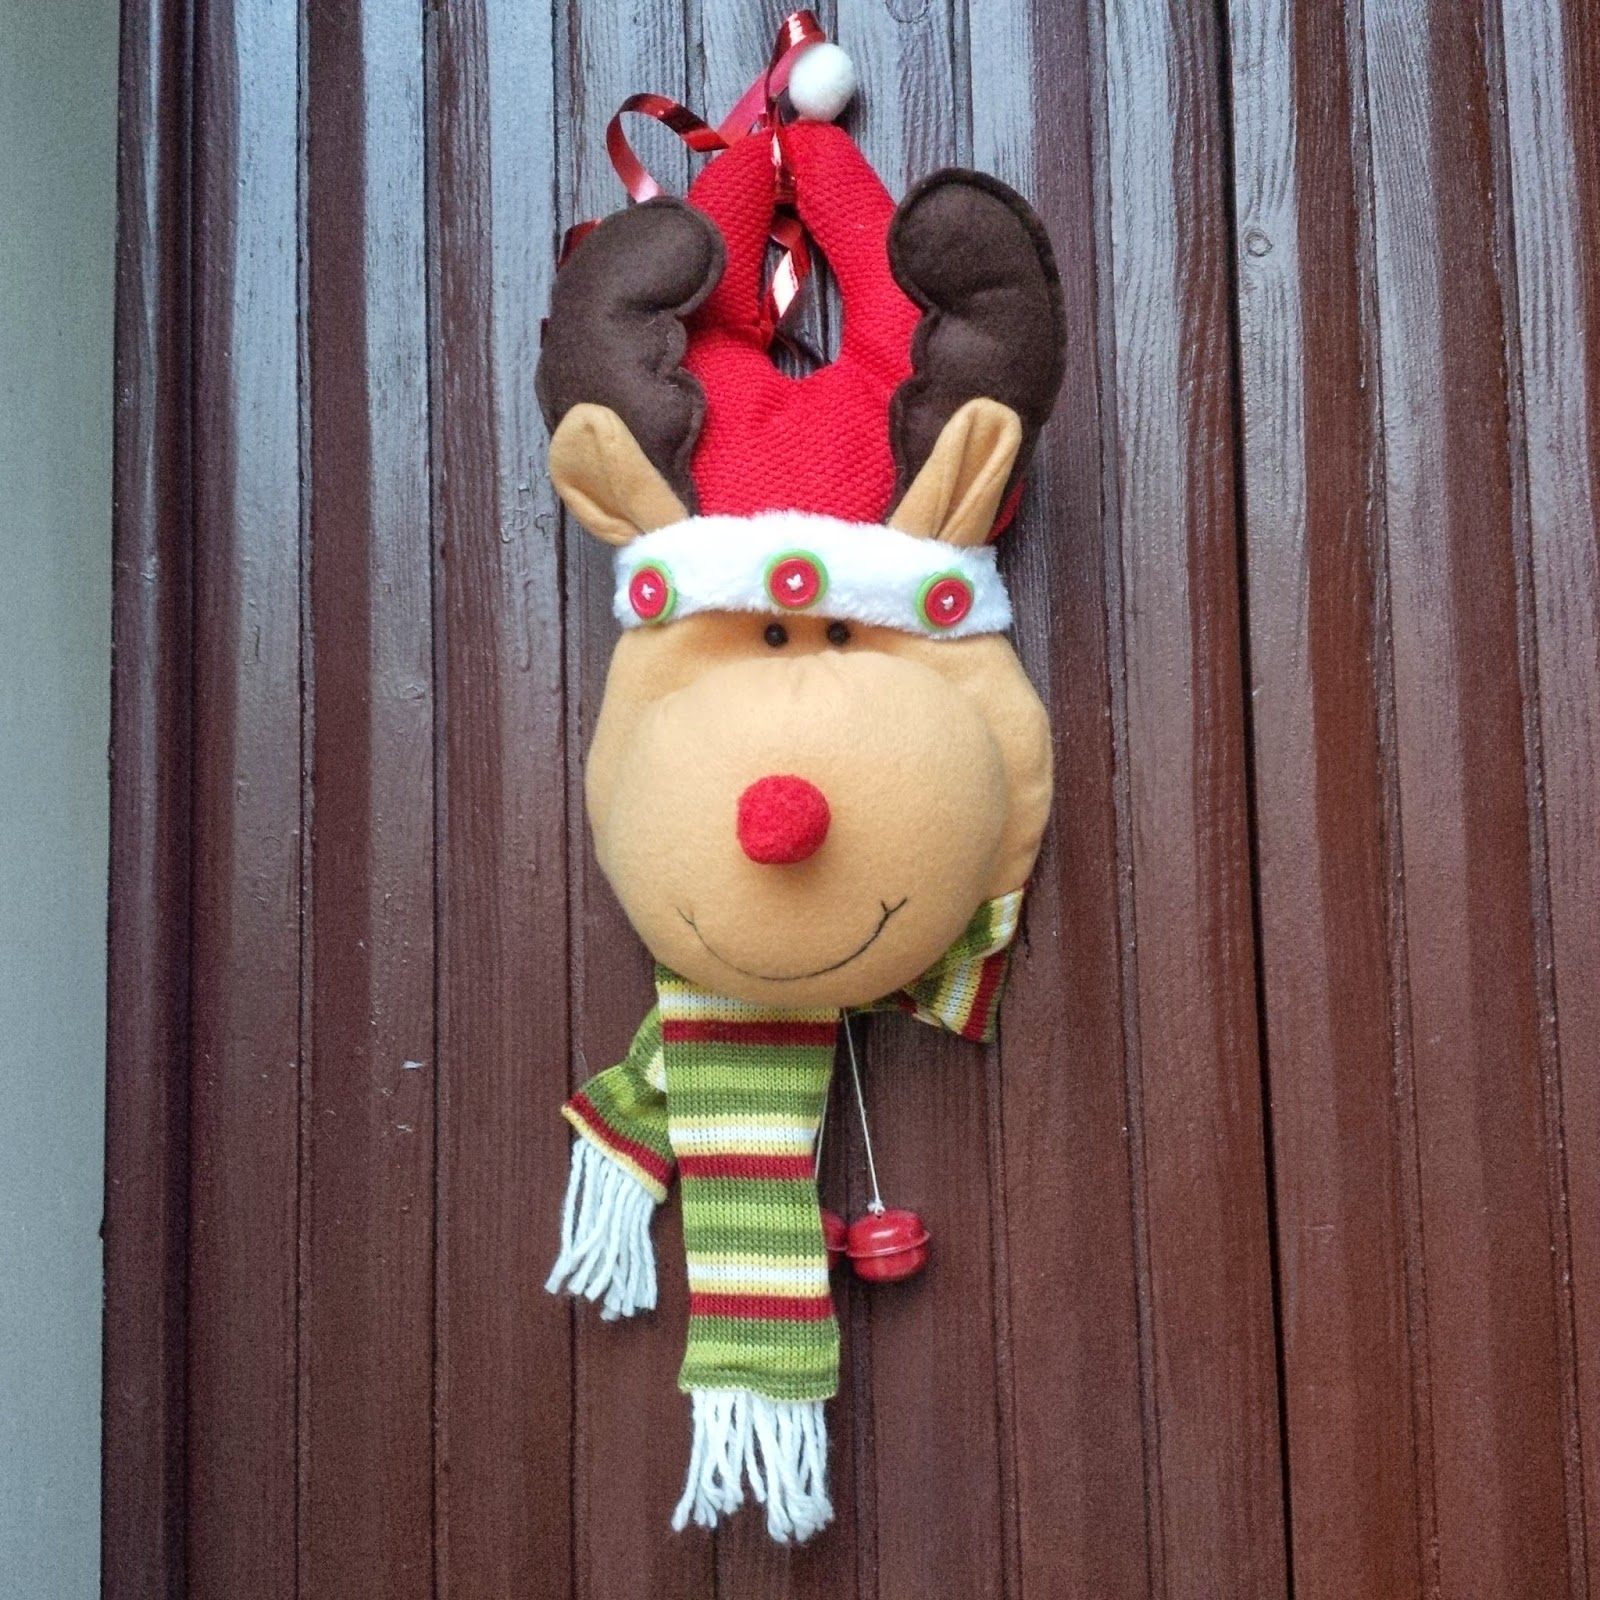 A smiling reindeer decorated our door at Christmas courtesy of our warm-hearted neighbour